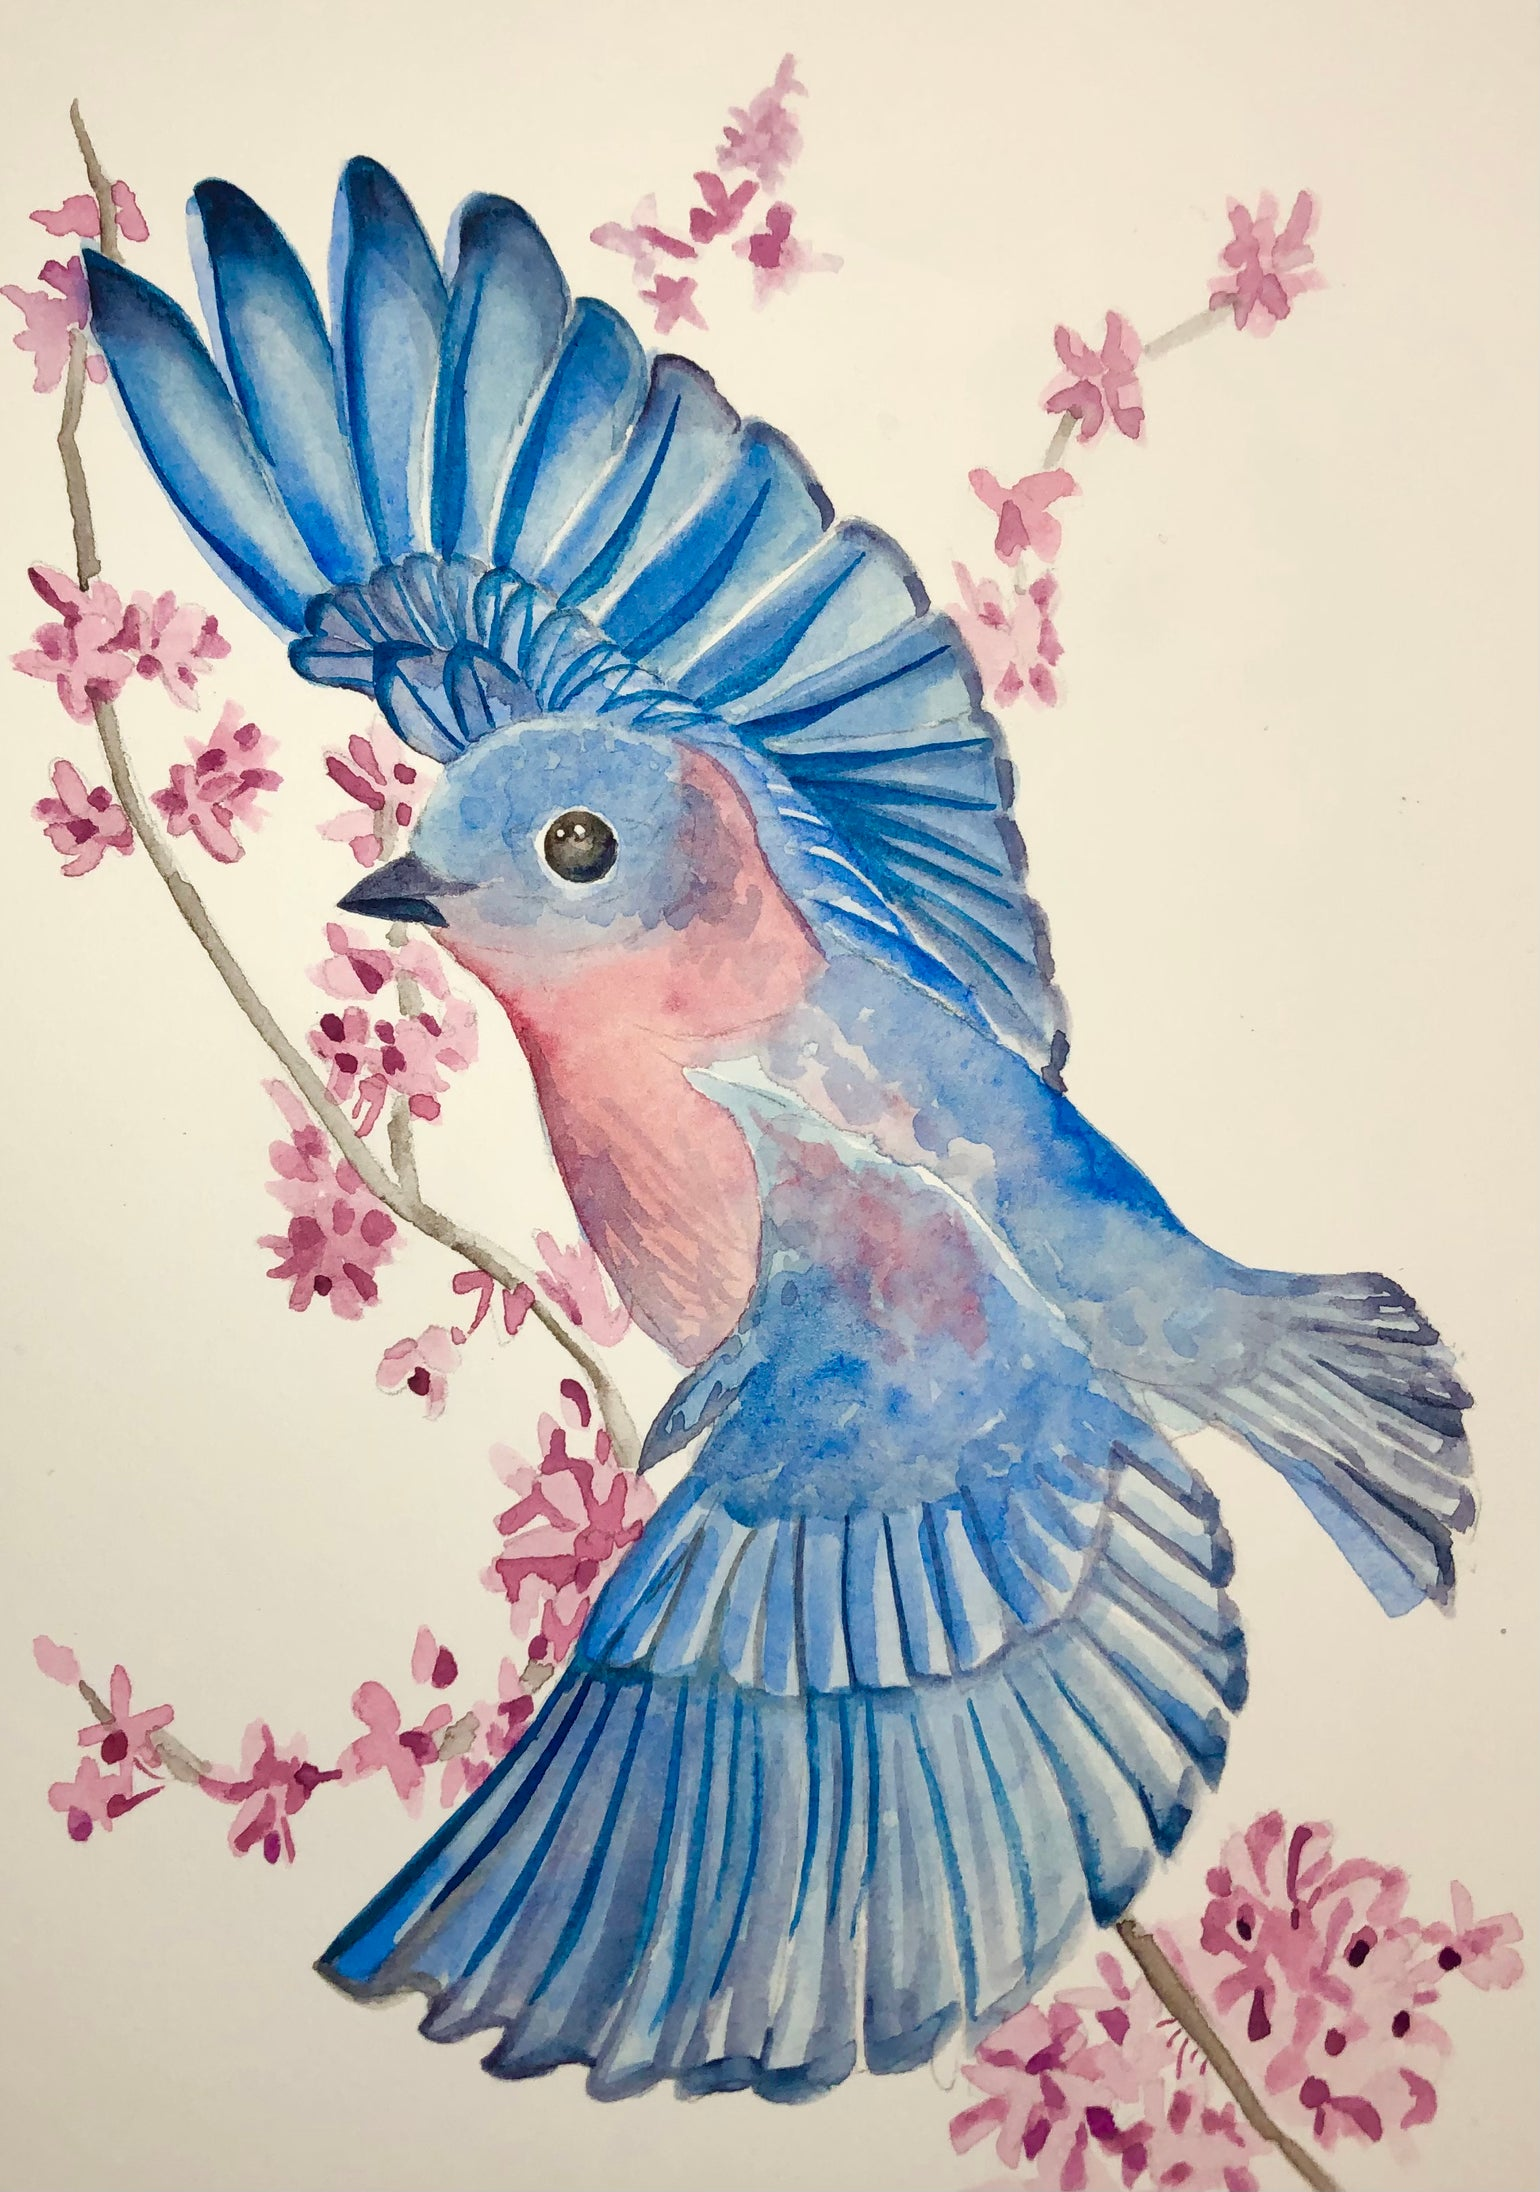 Image of Blue Bird with Redbud Branches